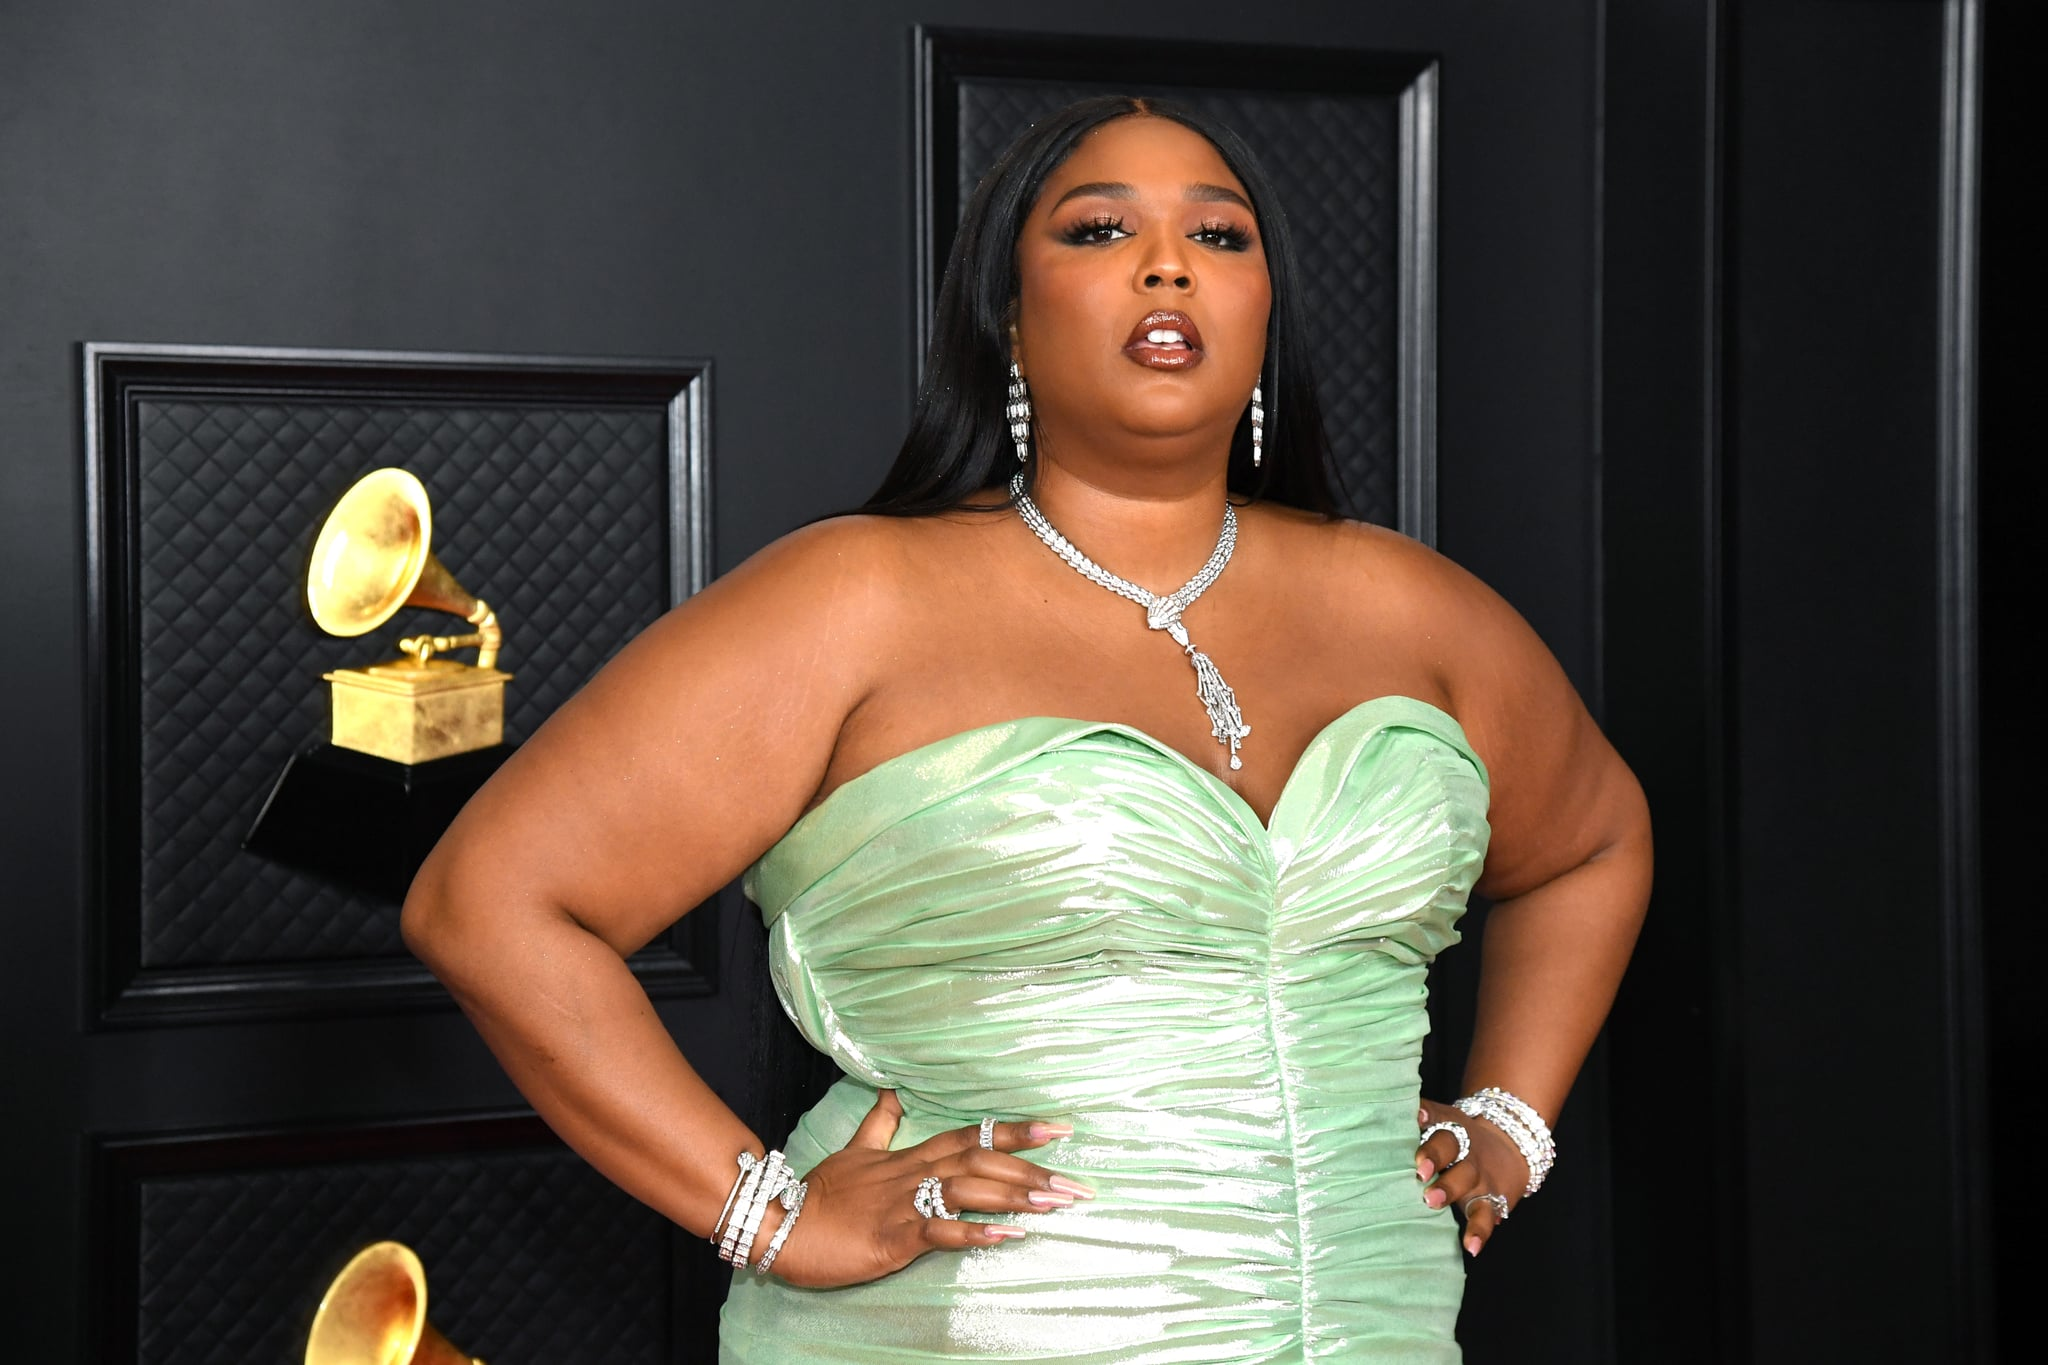 LOS ANGELES, CALIFORNIA - MARCH 14: Lizzo attends the 63rd Annual GRAMMY Awards at Los Angeles Convention Centre on March 14, 2021 in Los Angeles, California. (Photo by Kevin Mazur/Getty Images for The Recording Academy )